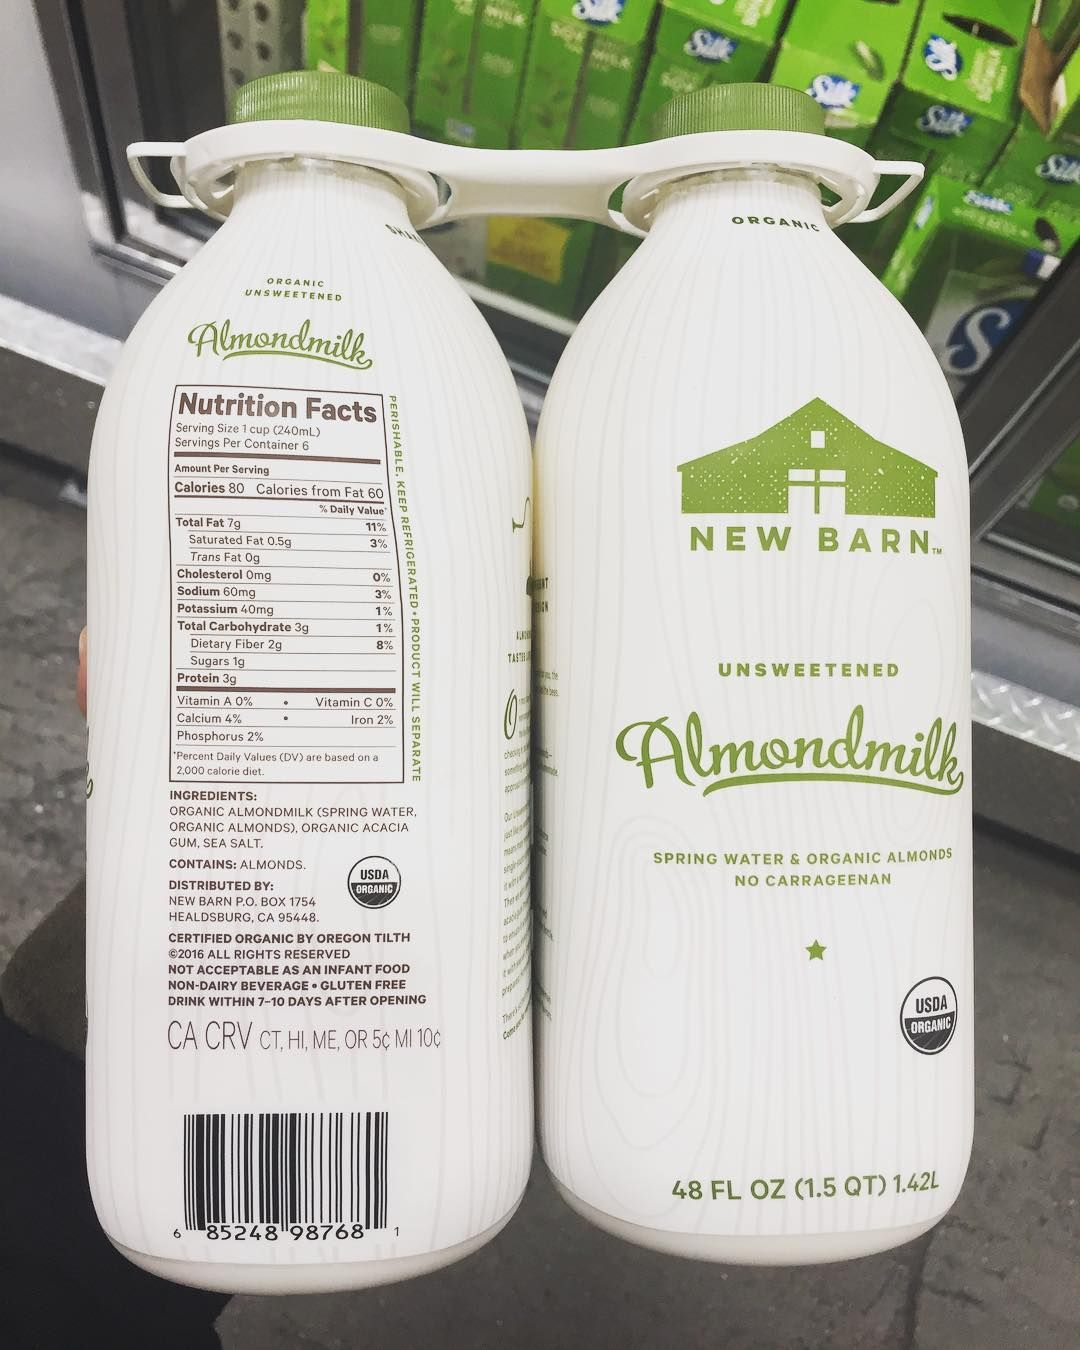 costco come up : 96oz of milk made from organic almonds and